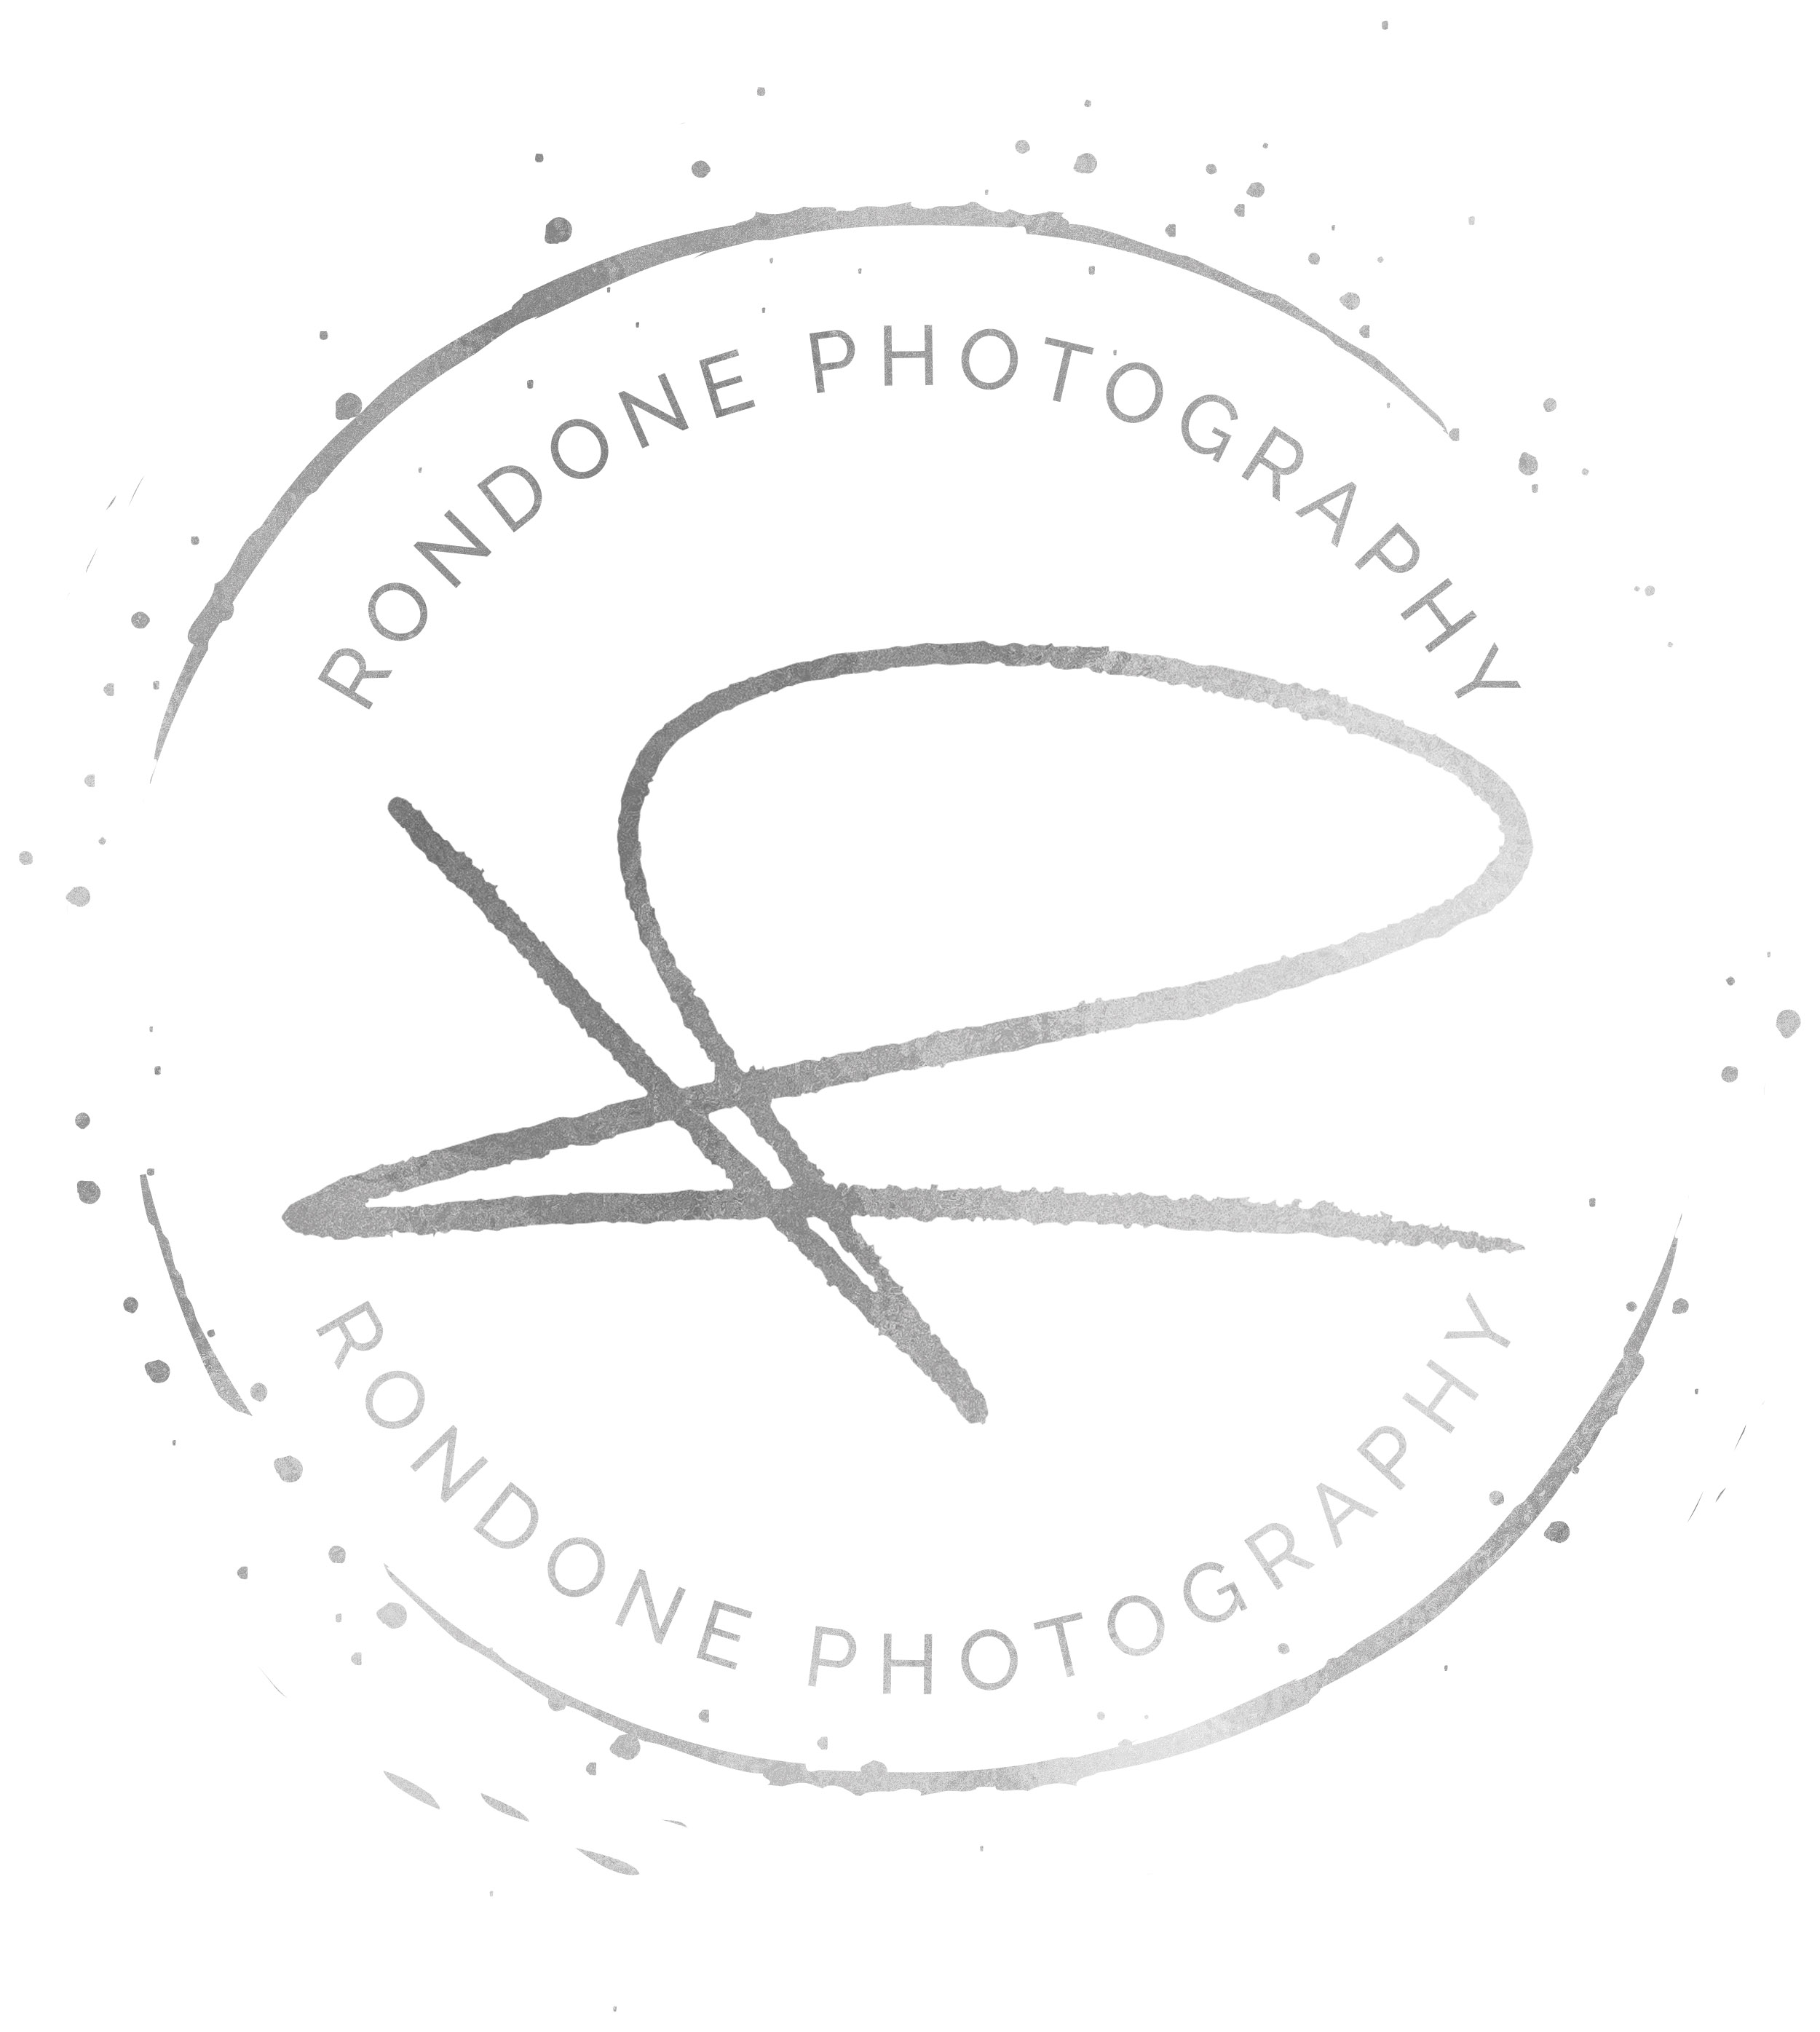 Rondone Photography